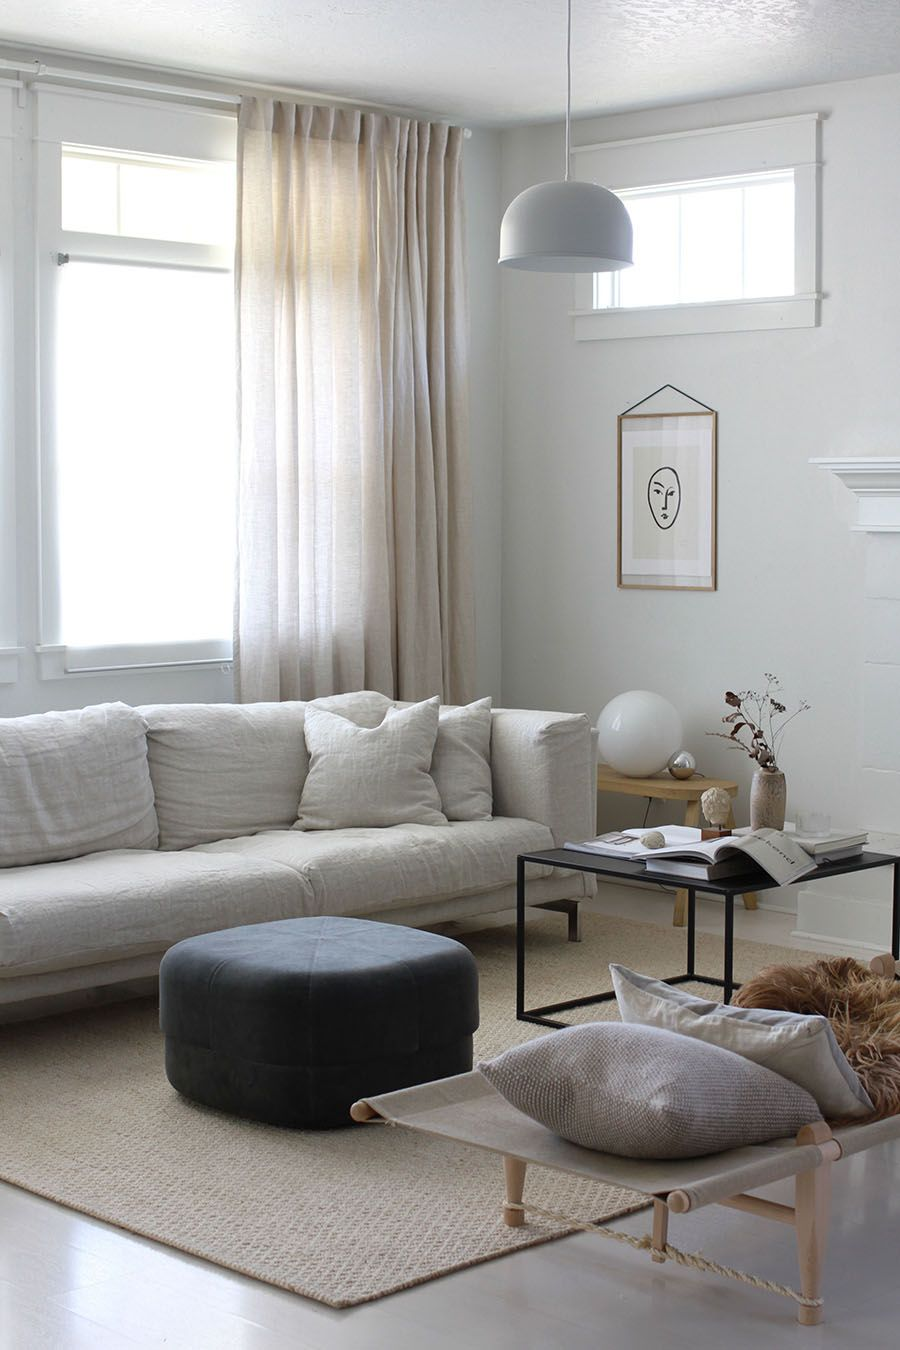 Find your inspiration with Scandinavian Interiors and